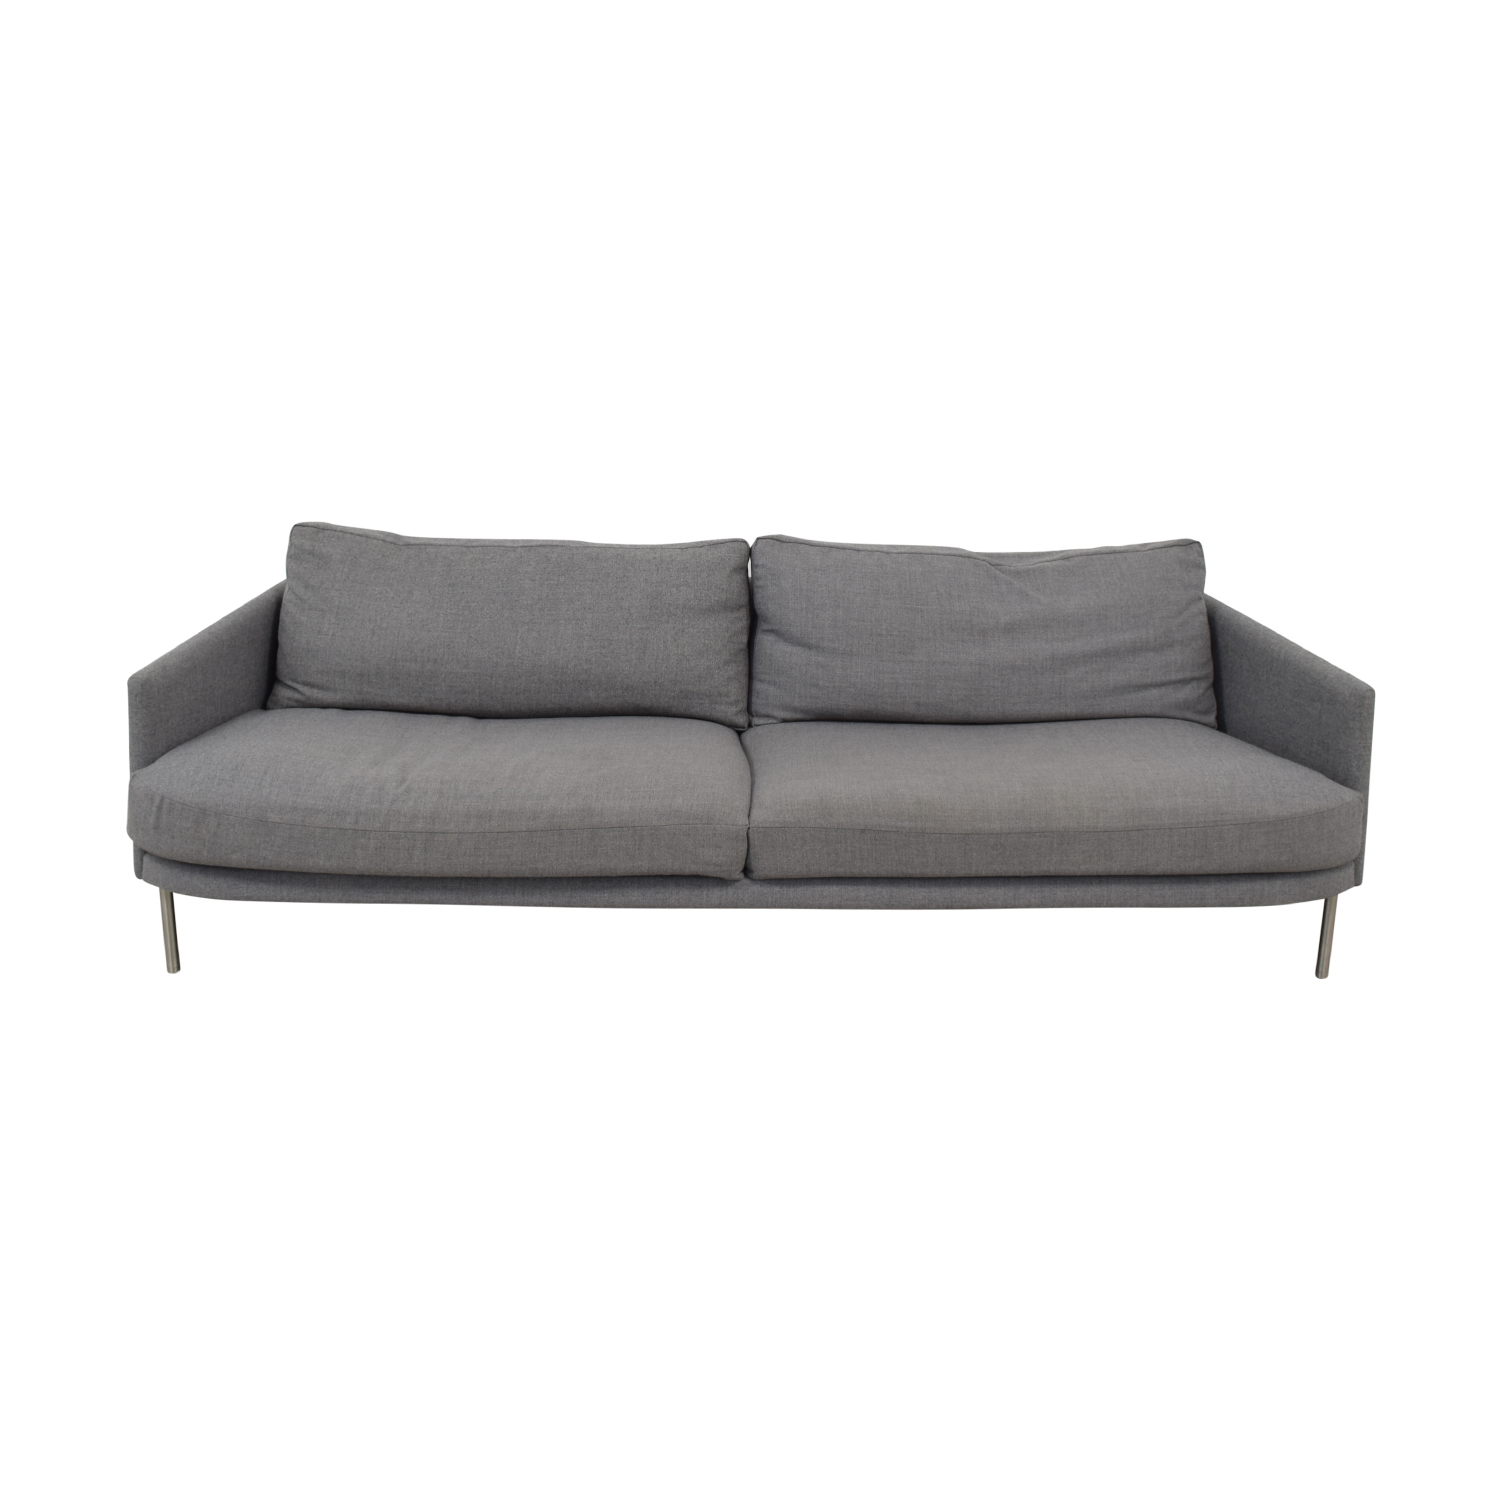 Design Within Reach Design Within Reach Two Cushion Sofa on sale